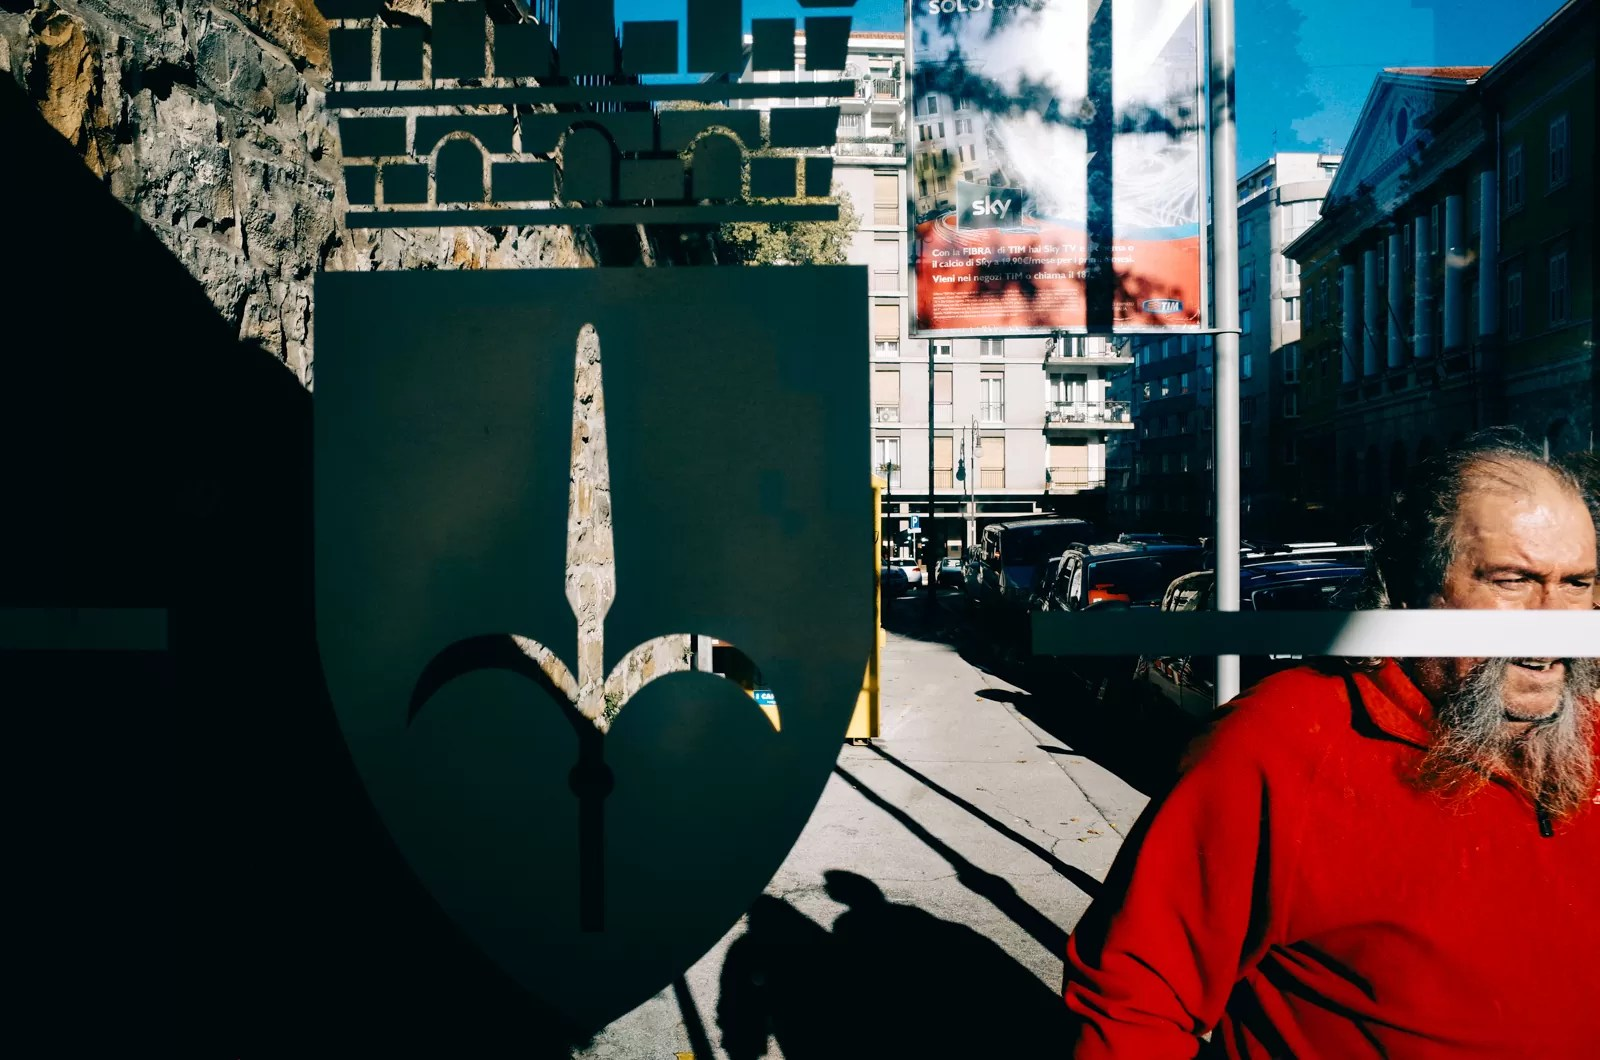 R0006779 - One Day in Trieste [Color Street Photography] - fotostreet.it